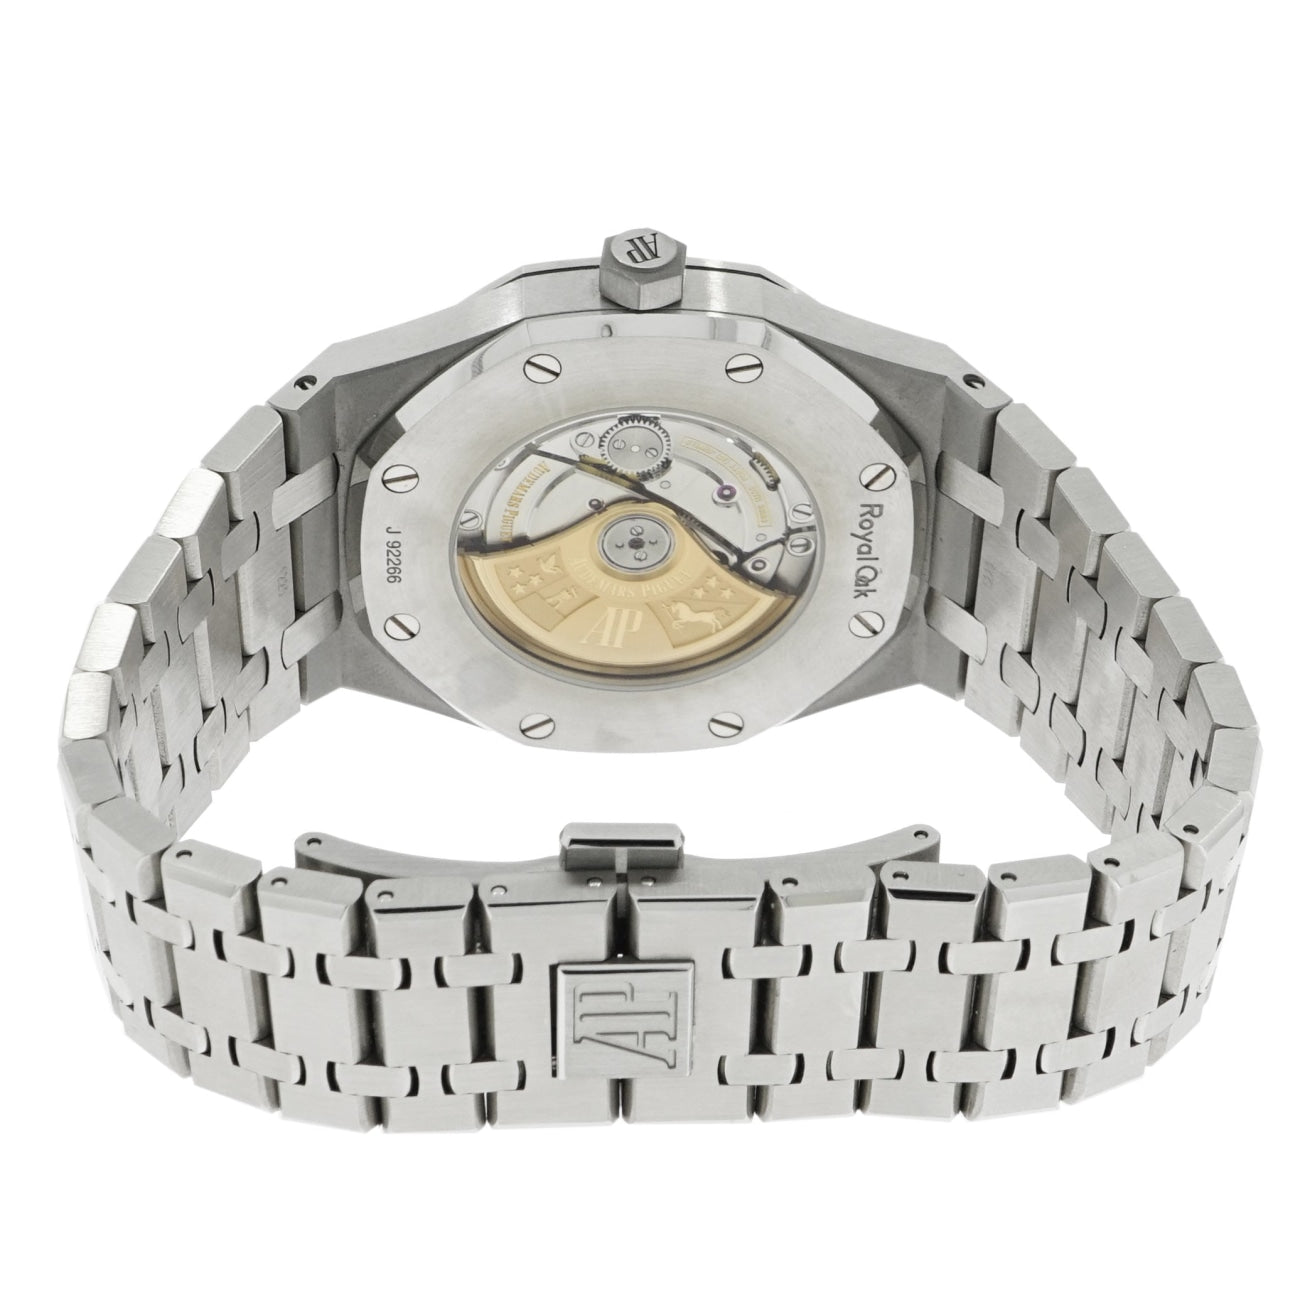 Pre-Owned Audemars Piguet Watches - Royal Oak | Manfredi Jewels